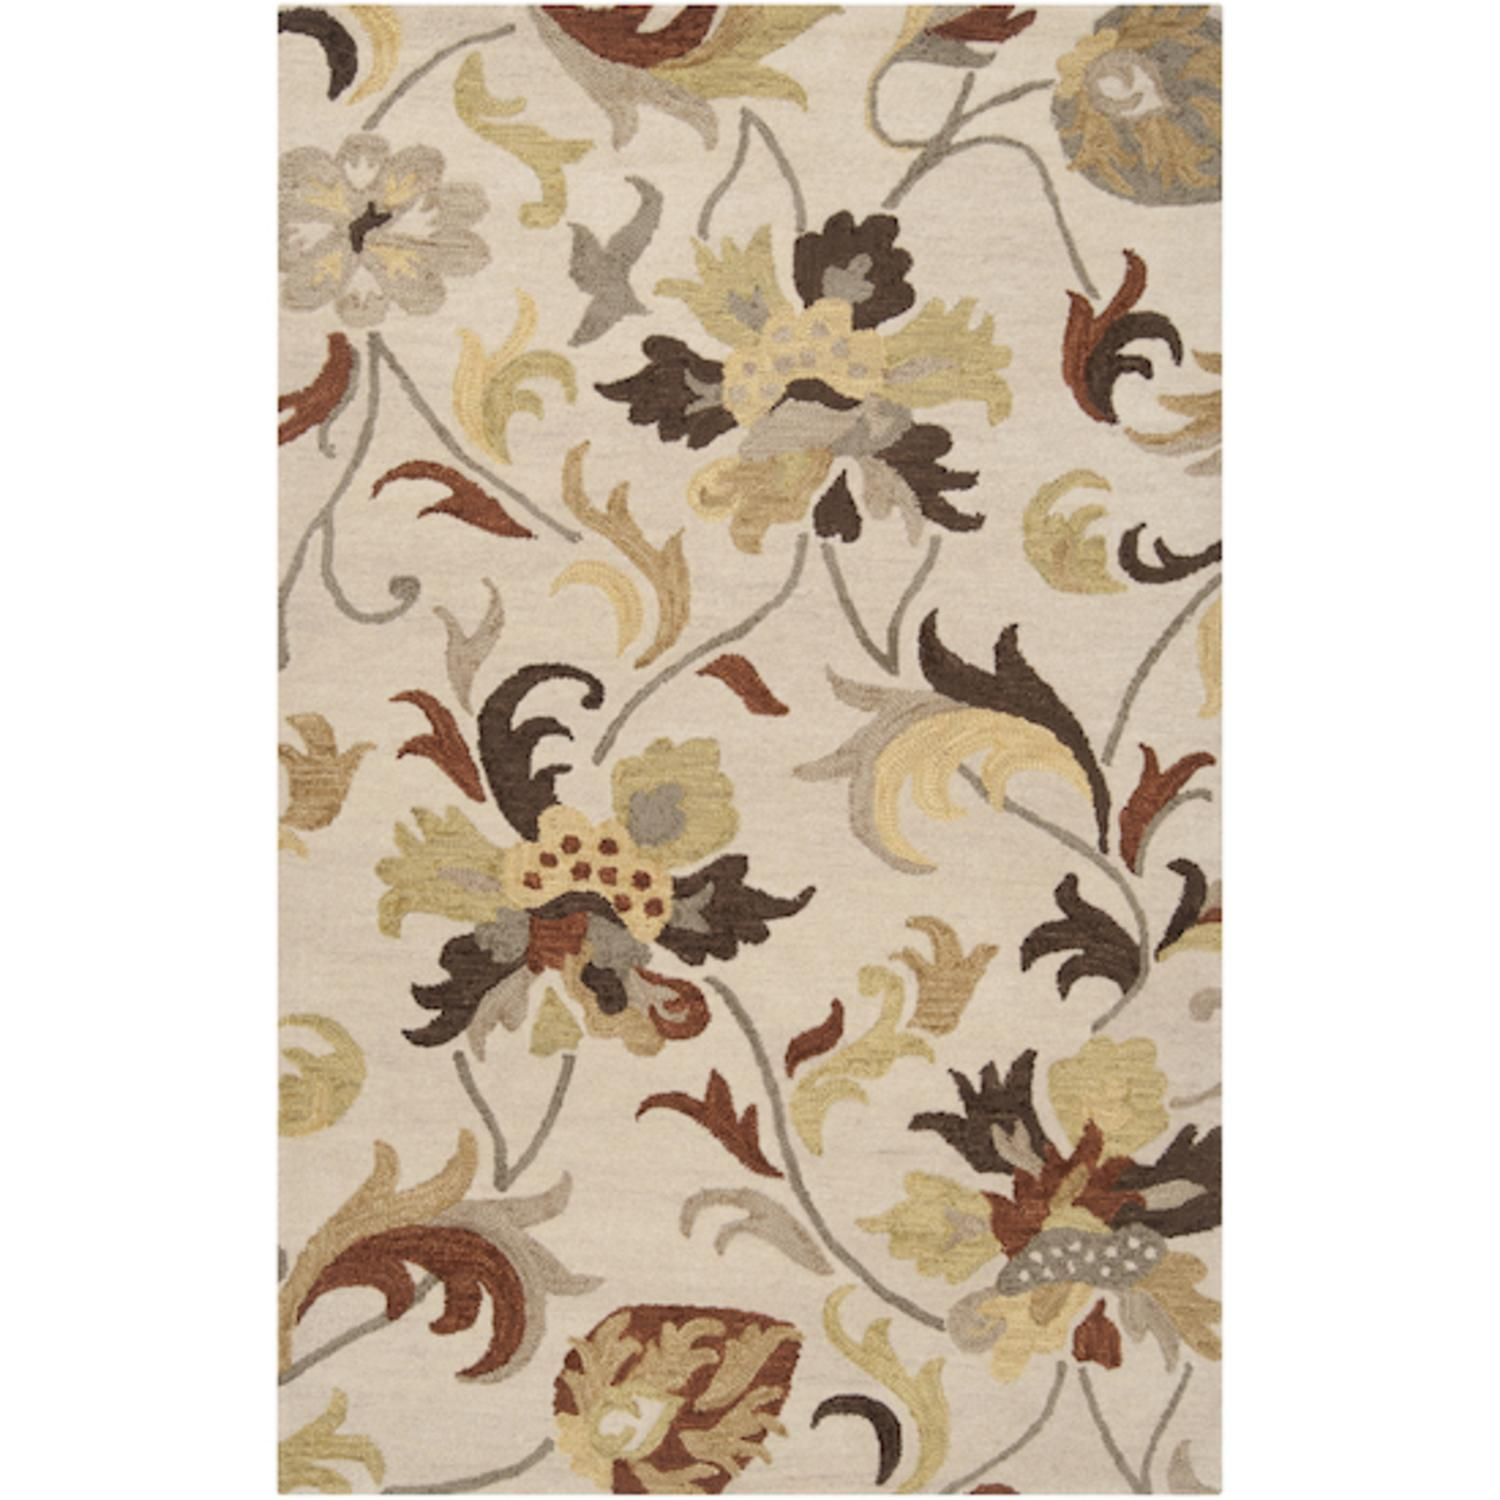 2' x 3' Lush Shoots Putty Beige and Pale Gold Wool Area Throw Rug